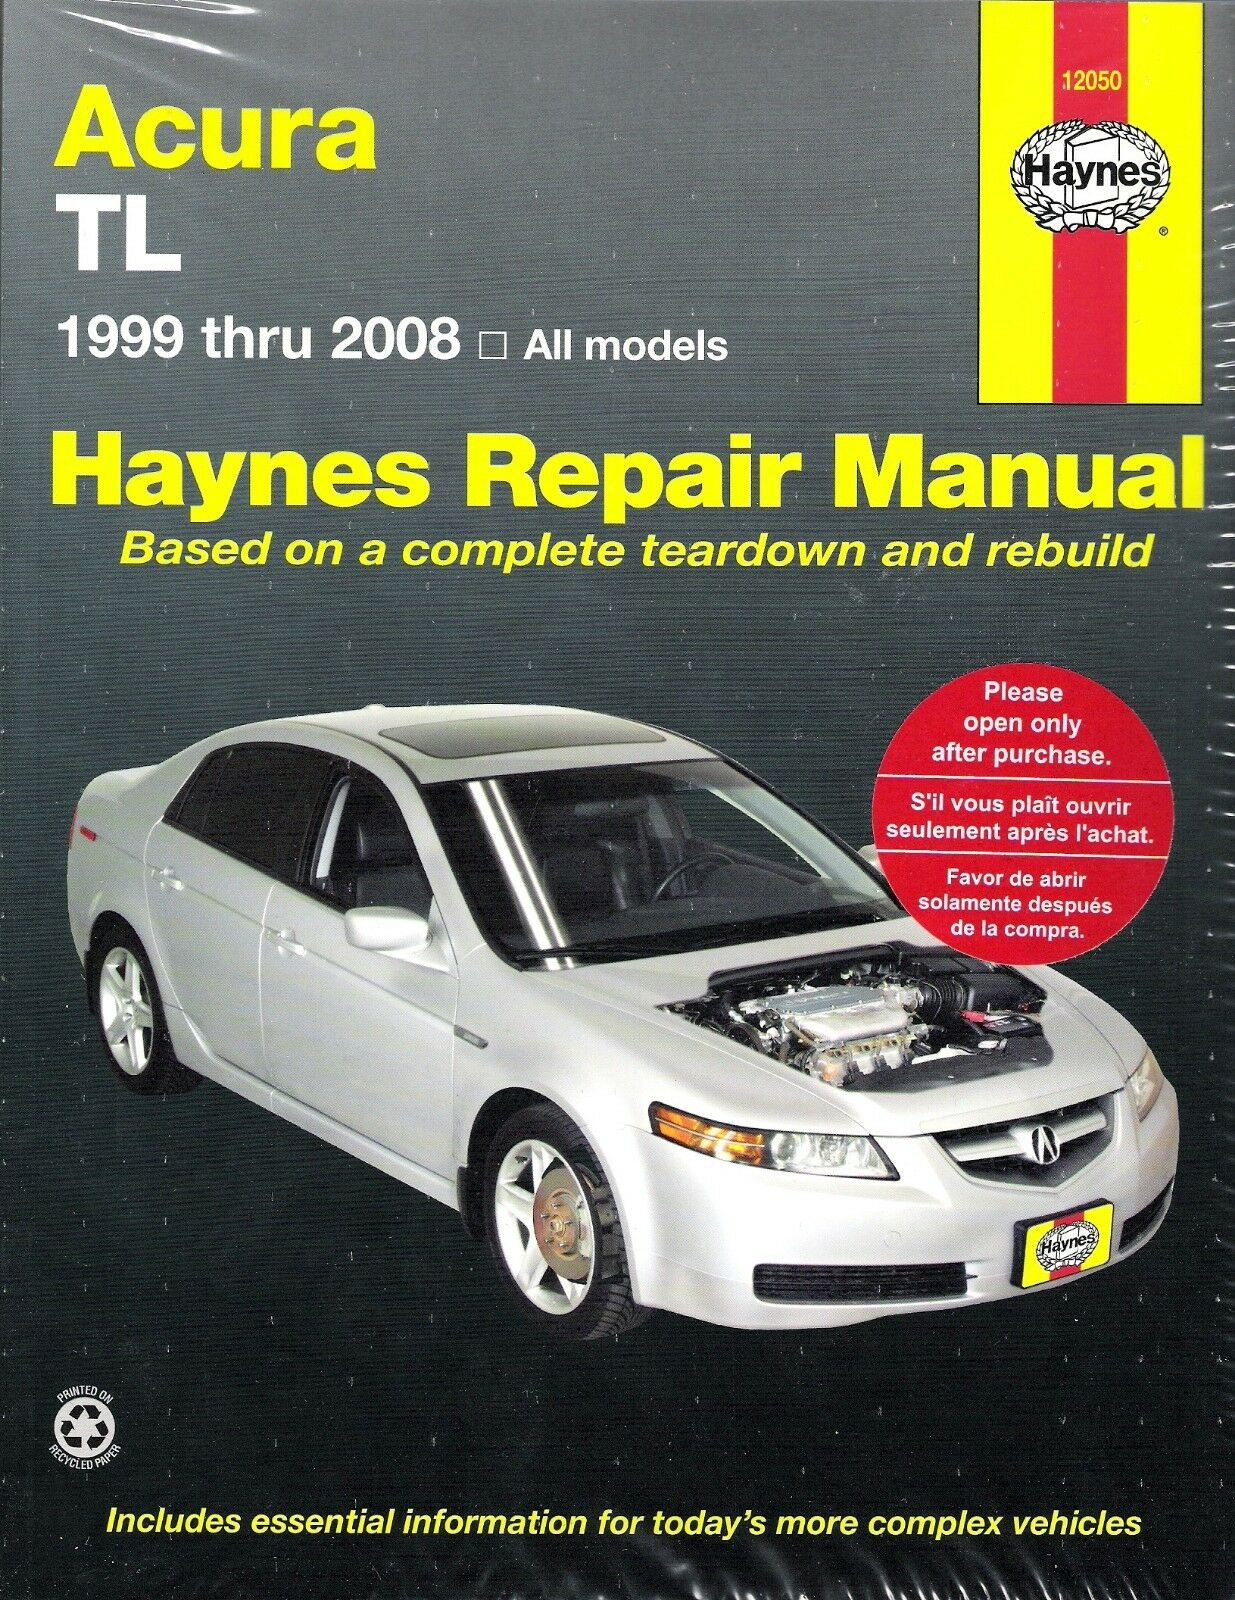 1999-2008 Acura TL Haynes Repair Service Workshop Shop Manual Book Guide  7446 1 of 1FREE Shipping ...